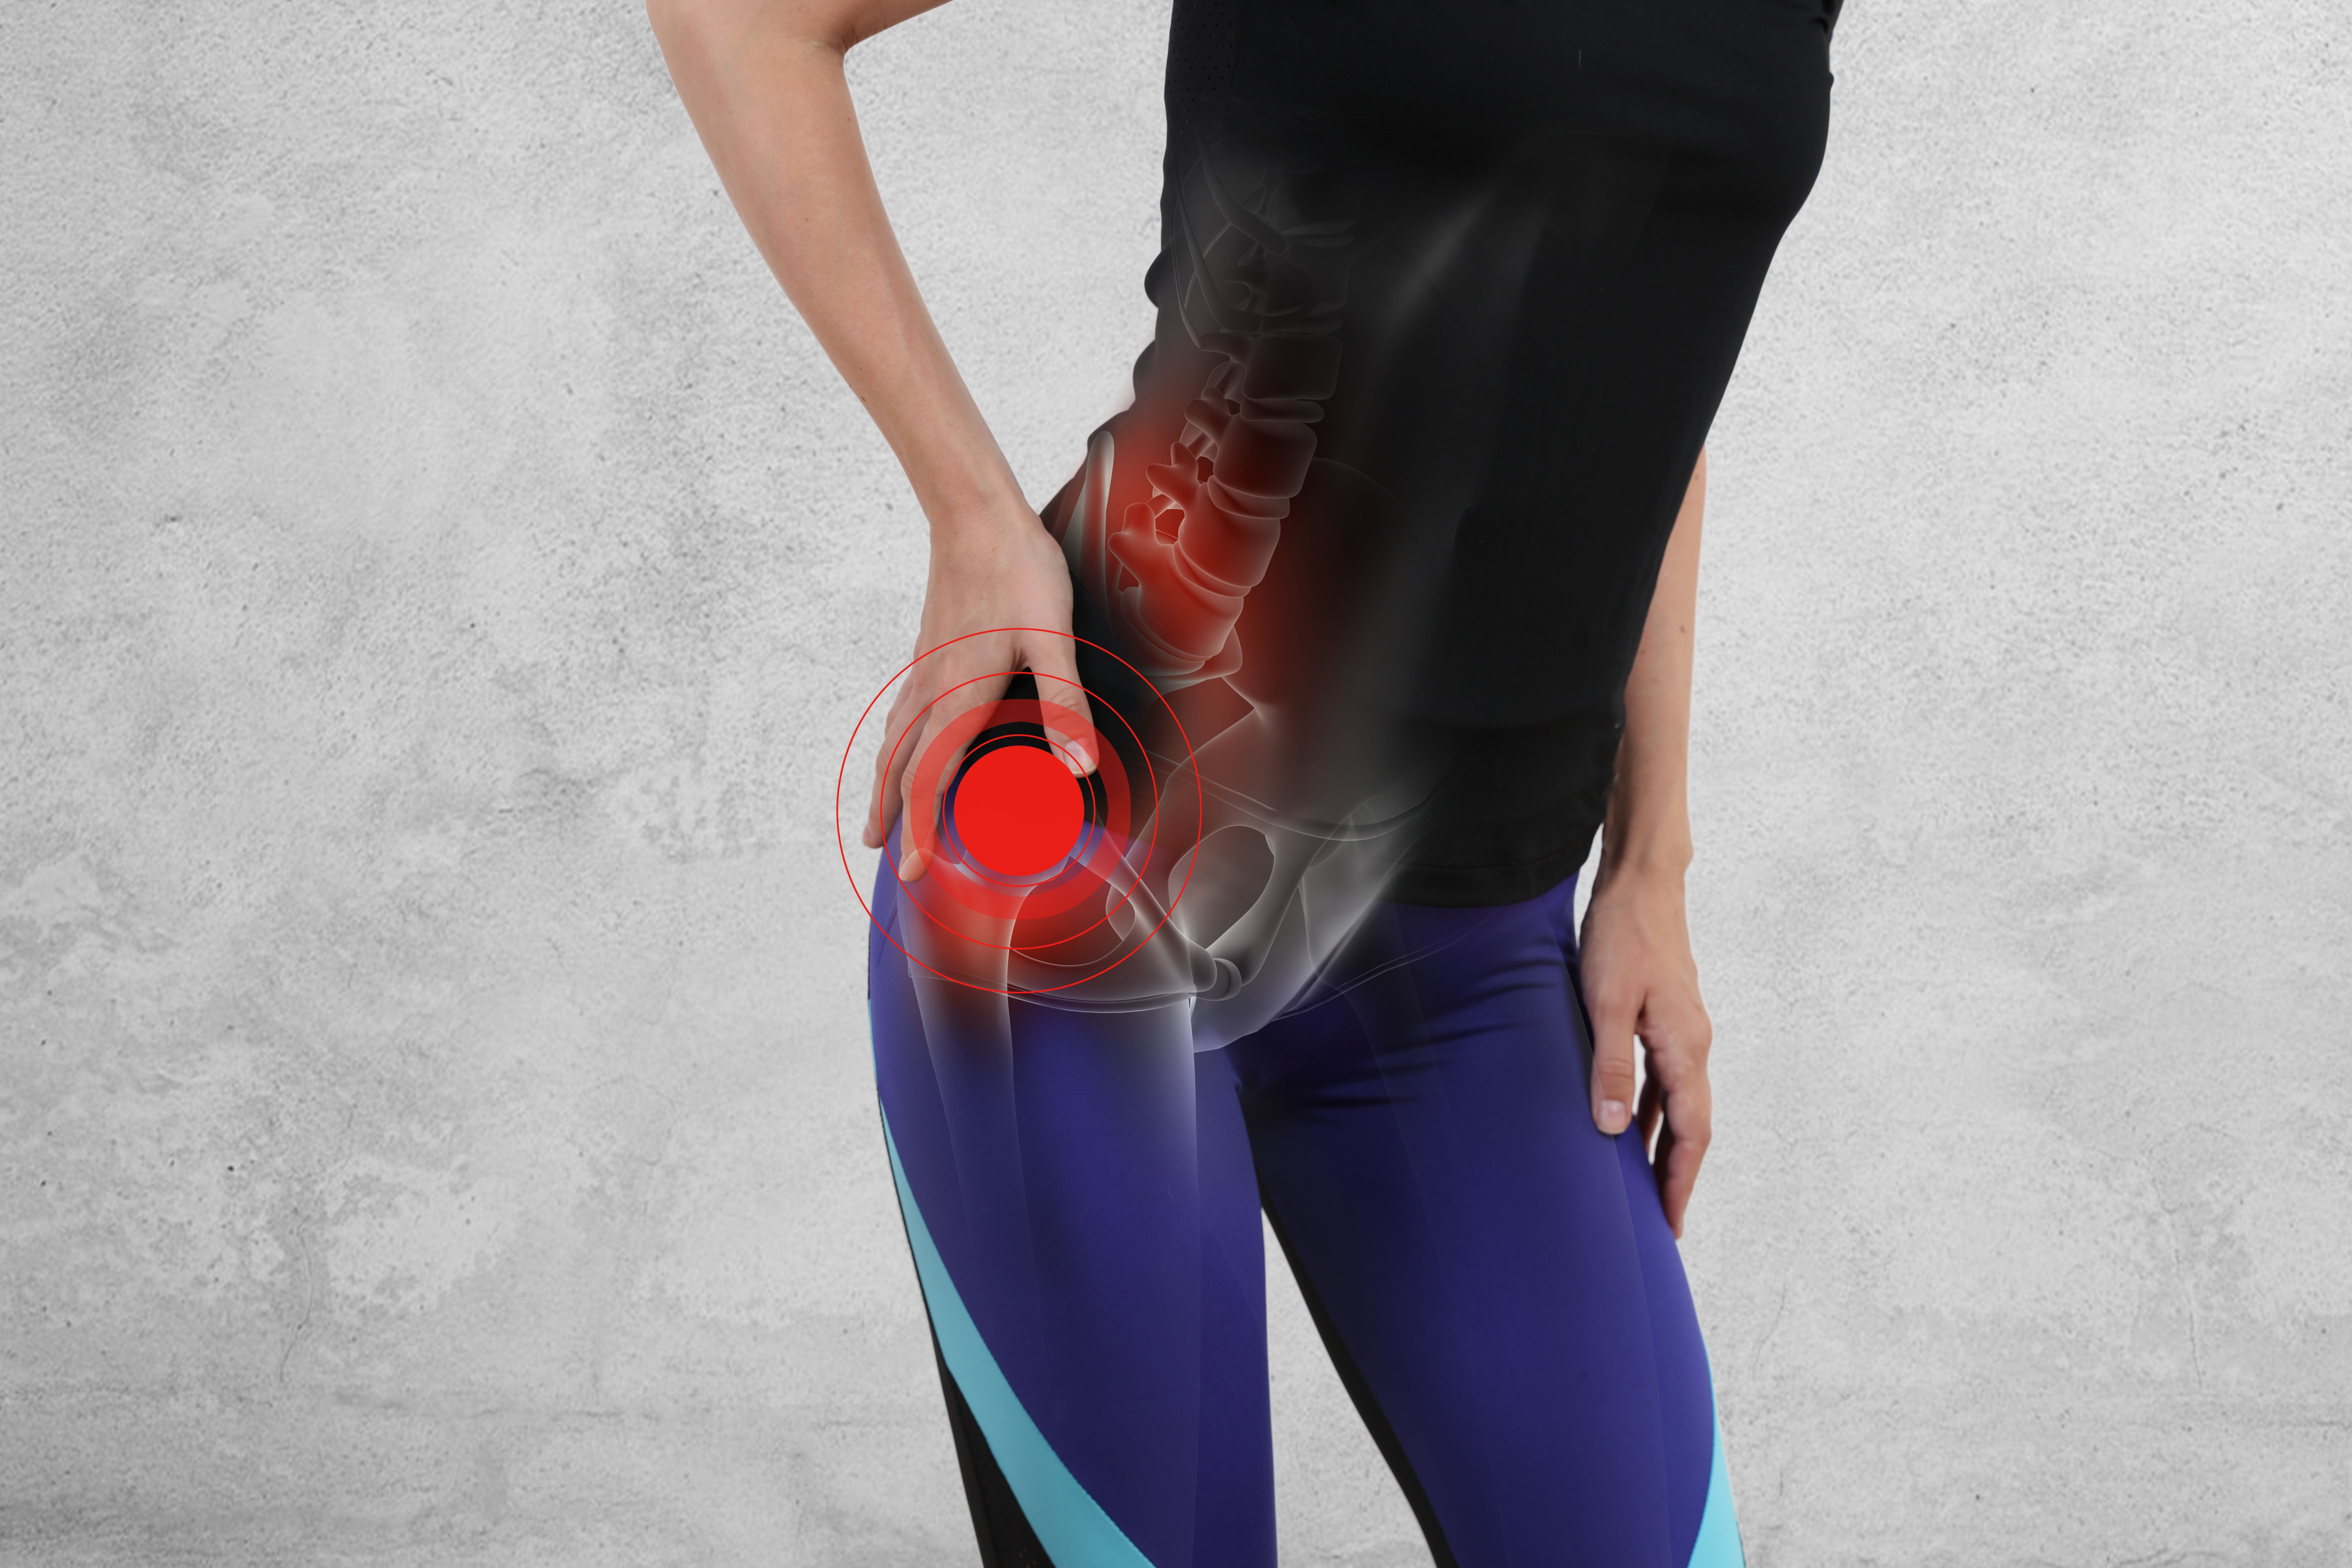 Motion Tests Essential for an Osteoarthritis Diagnosis: